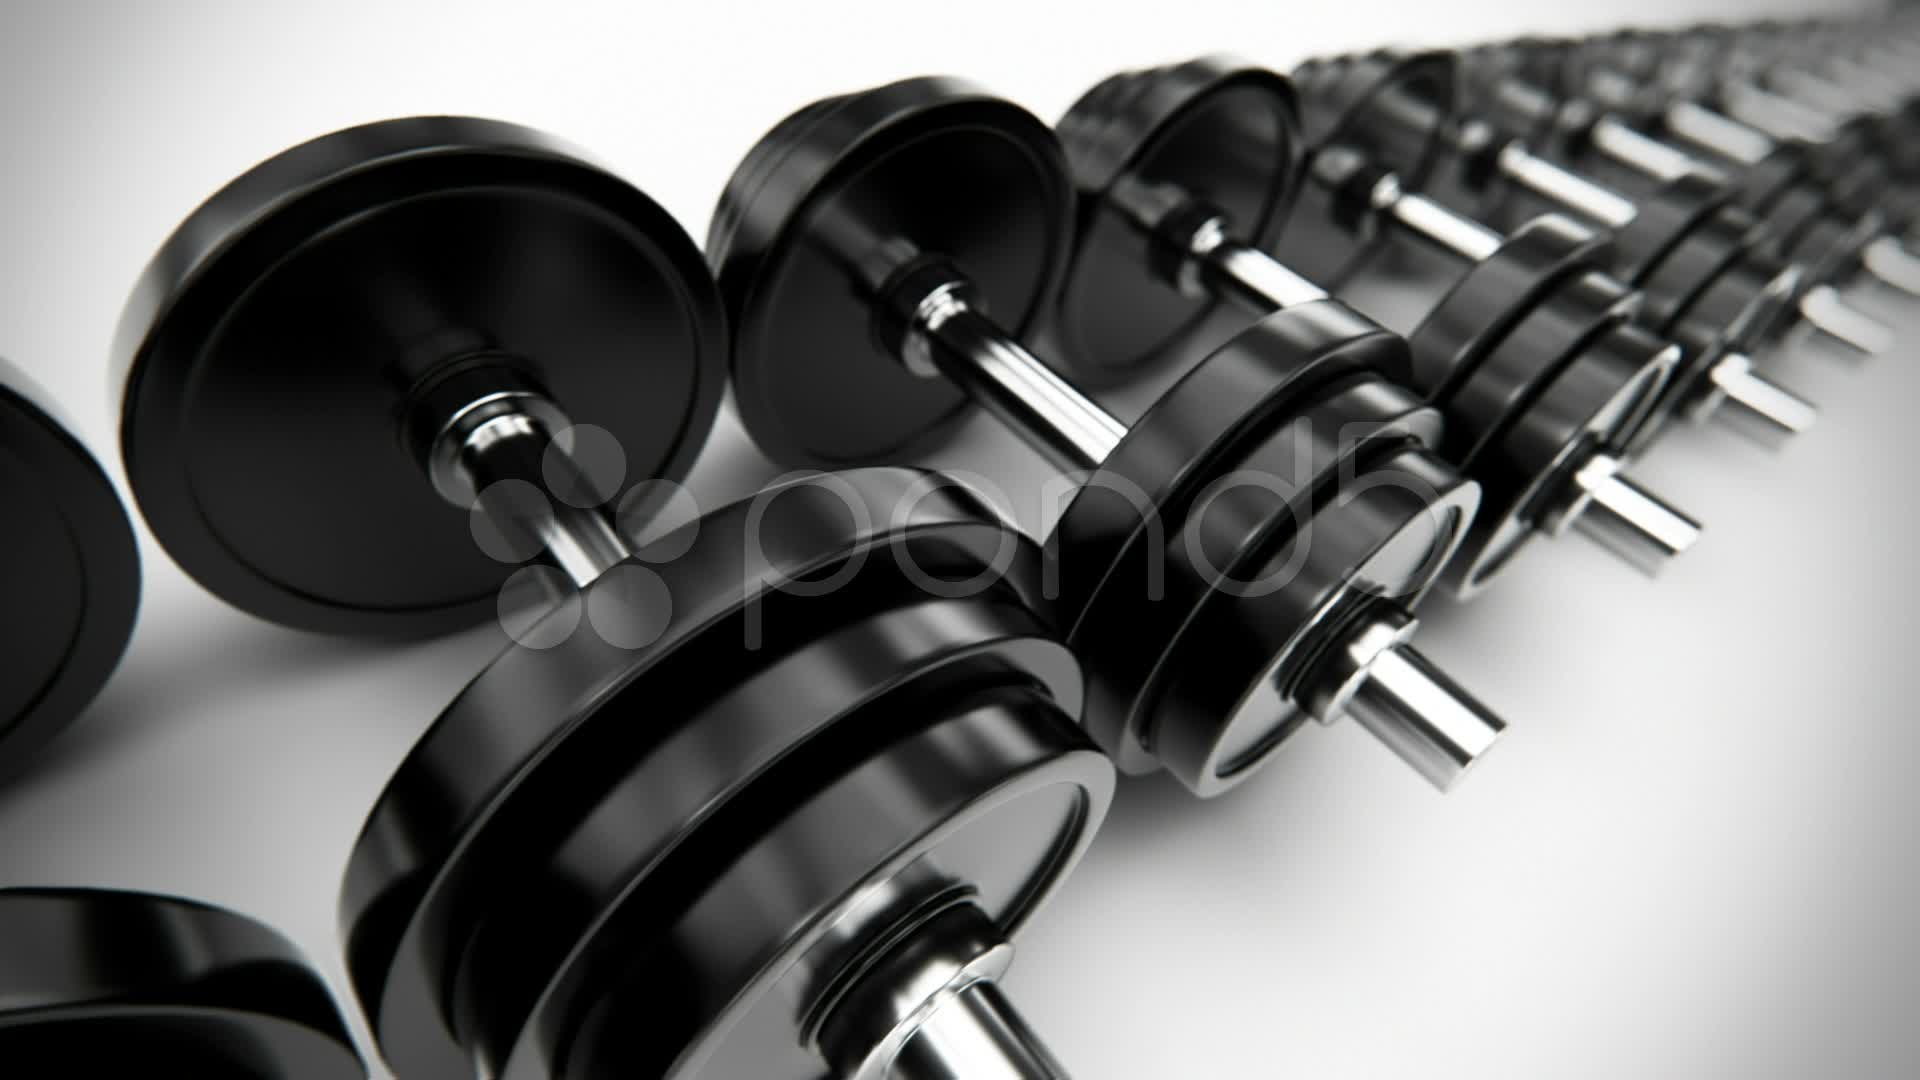 Weights Wallpaper 60 Images